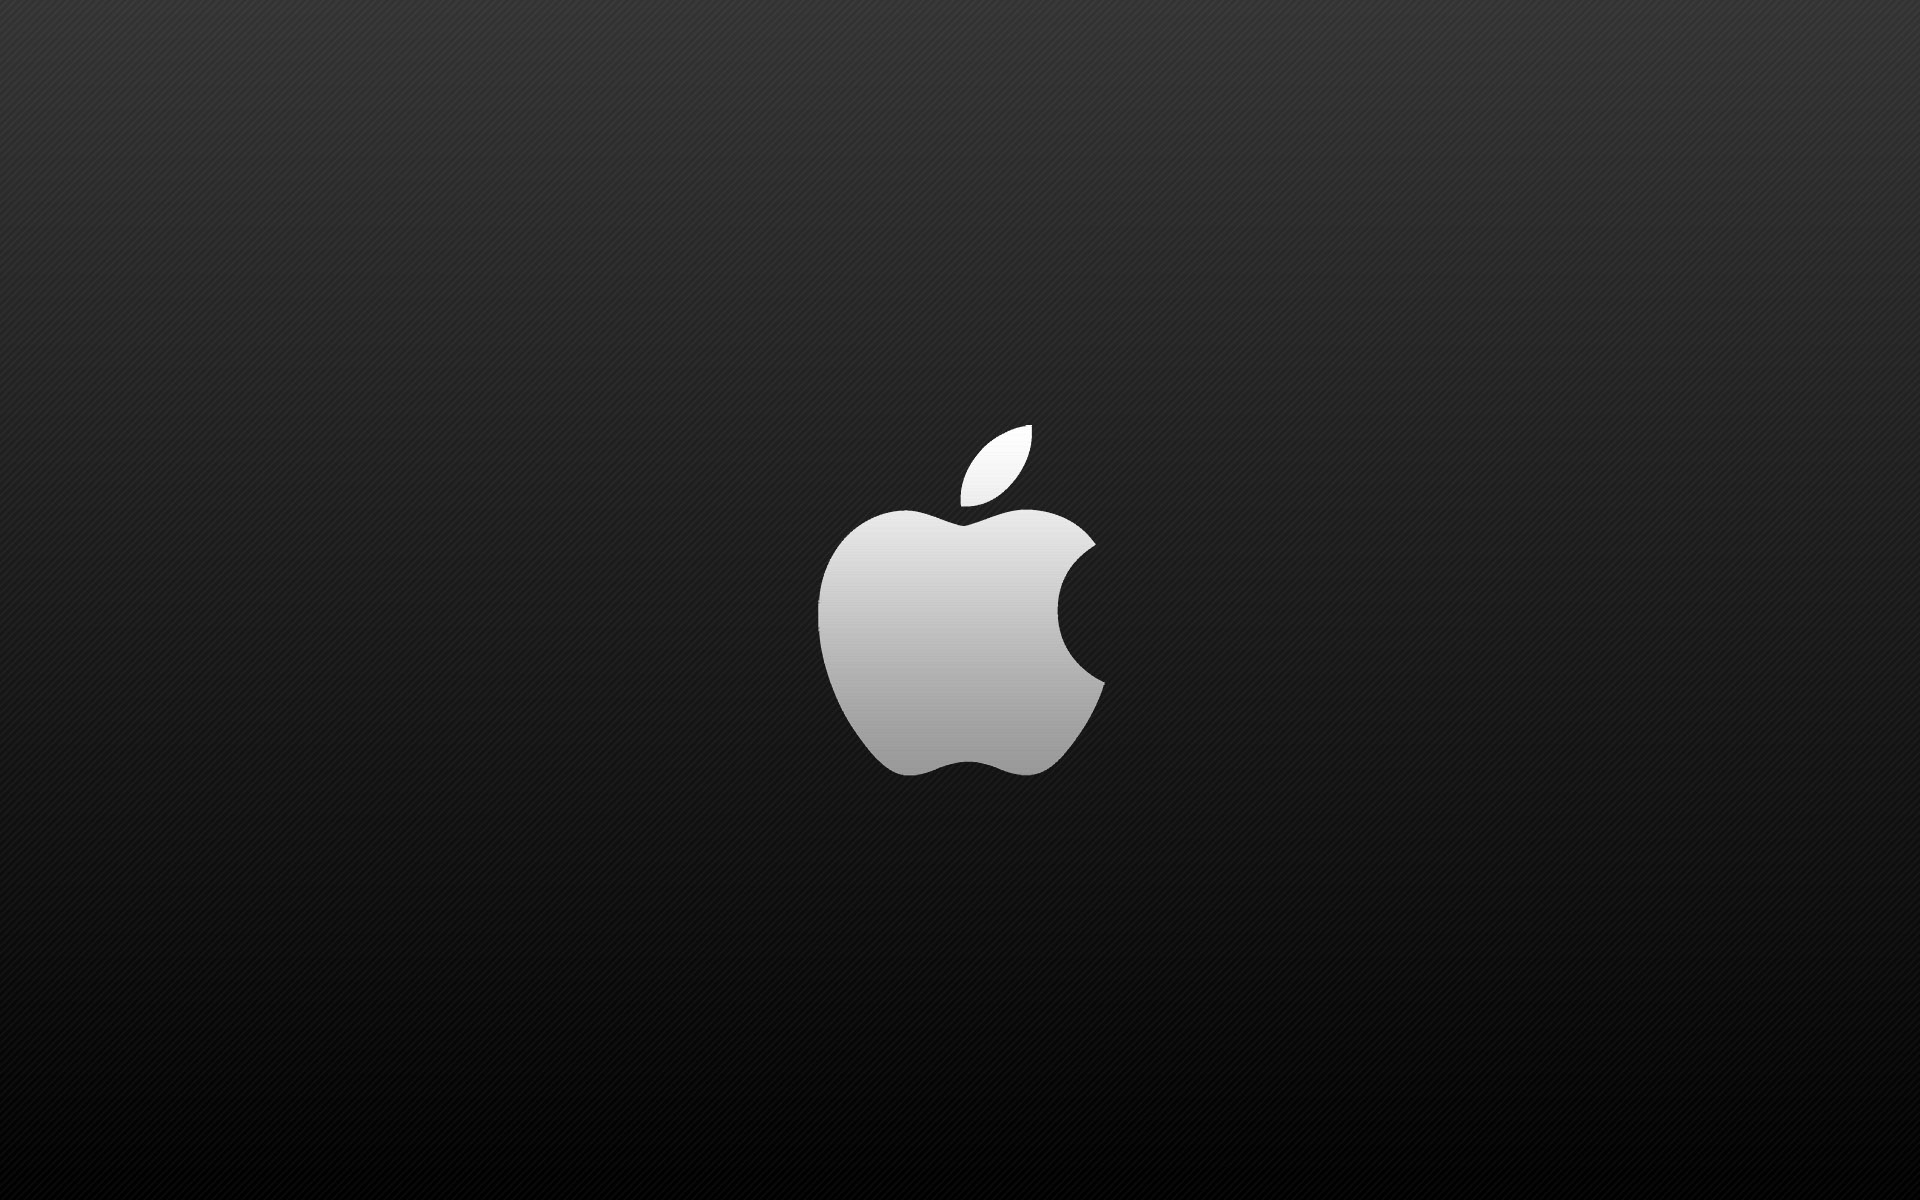 logo wallpapers cool background apple photo wallpaper 1920x1200